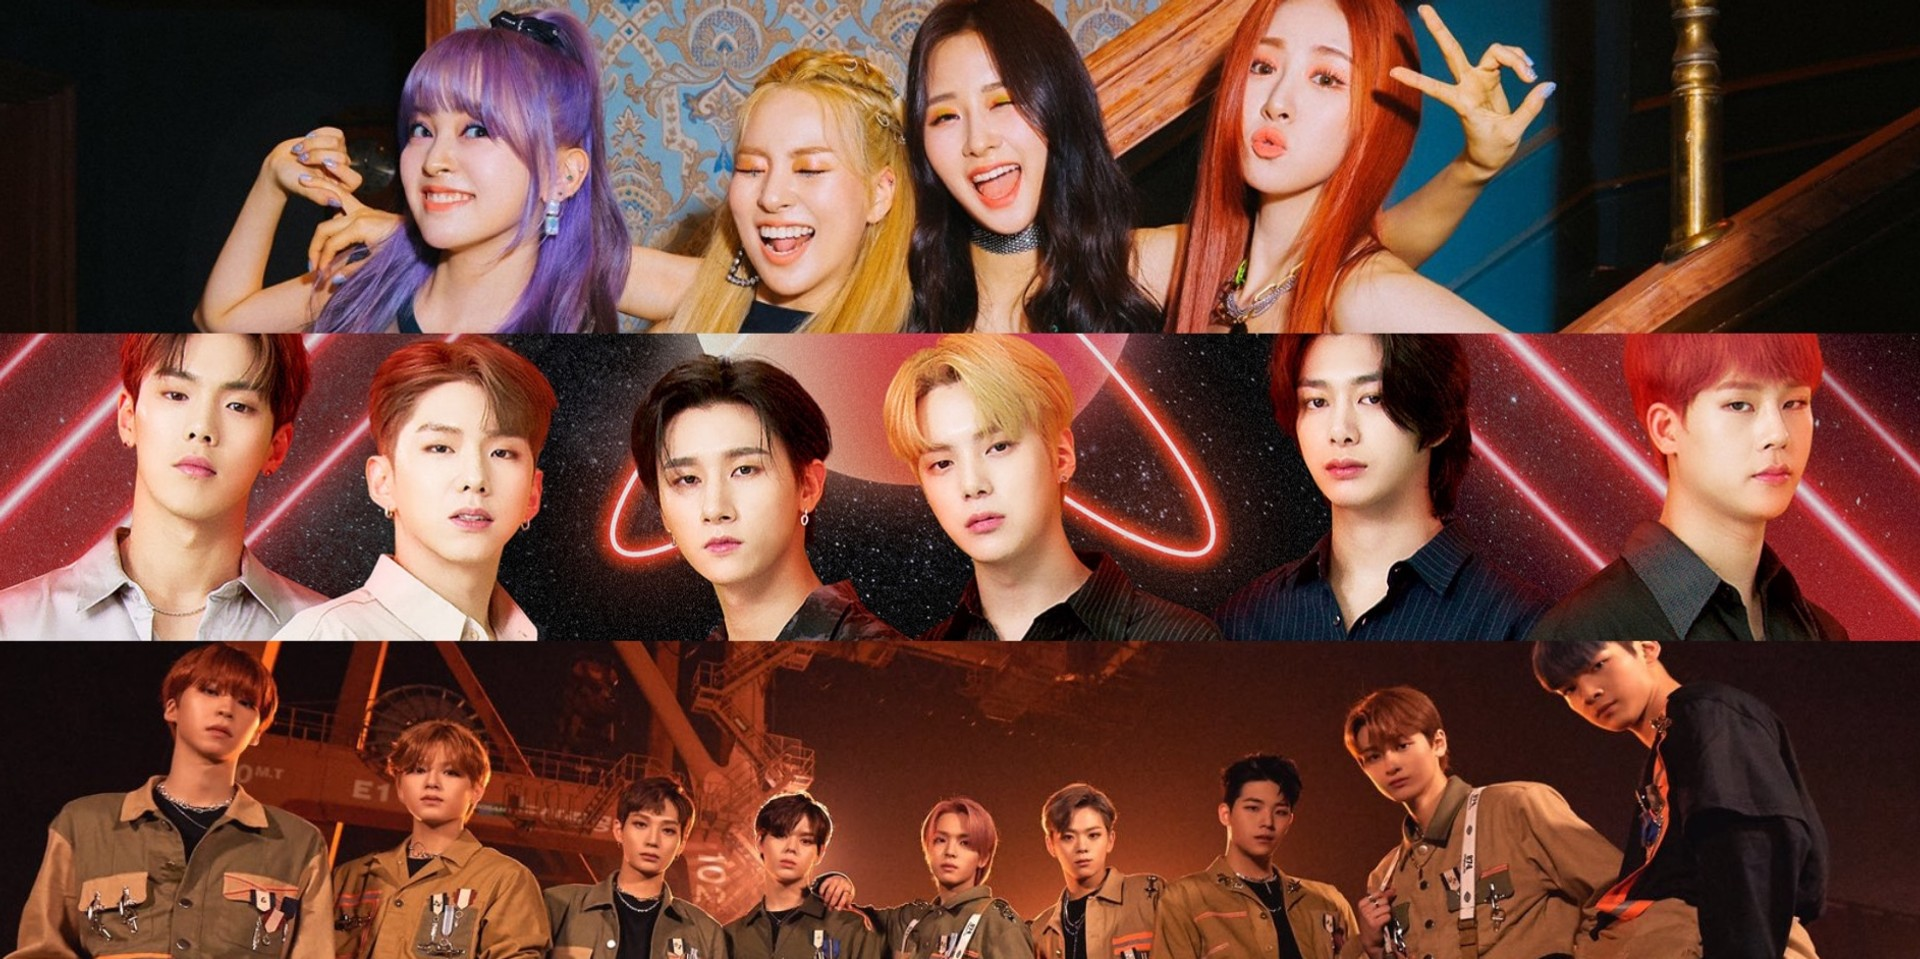 MONSTA X, GHOST9, and LUNARSOLAR to headline MK-1: MOTTLIVE K-Pop Vol. 1 Global Live Concert